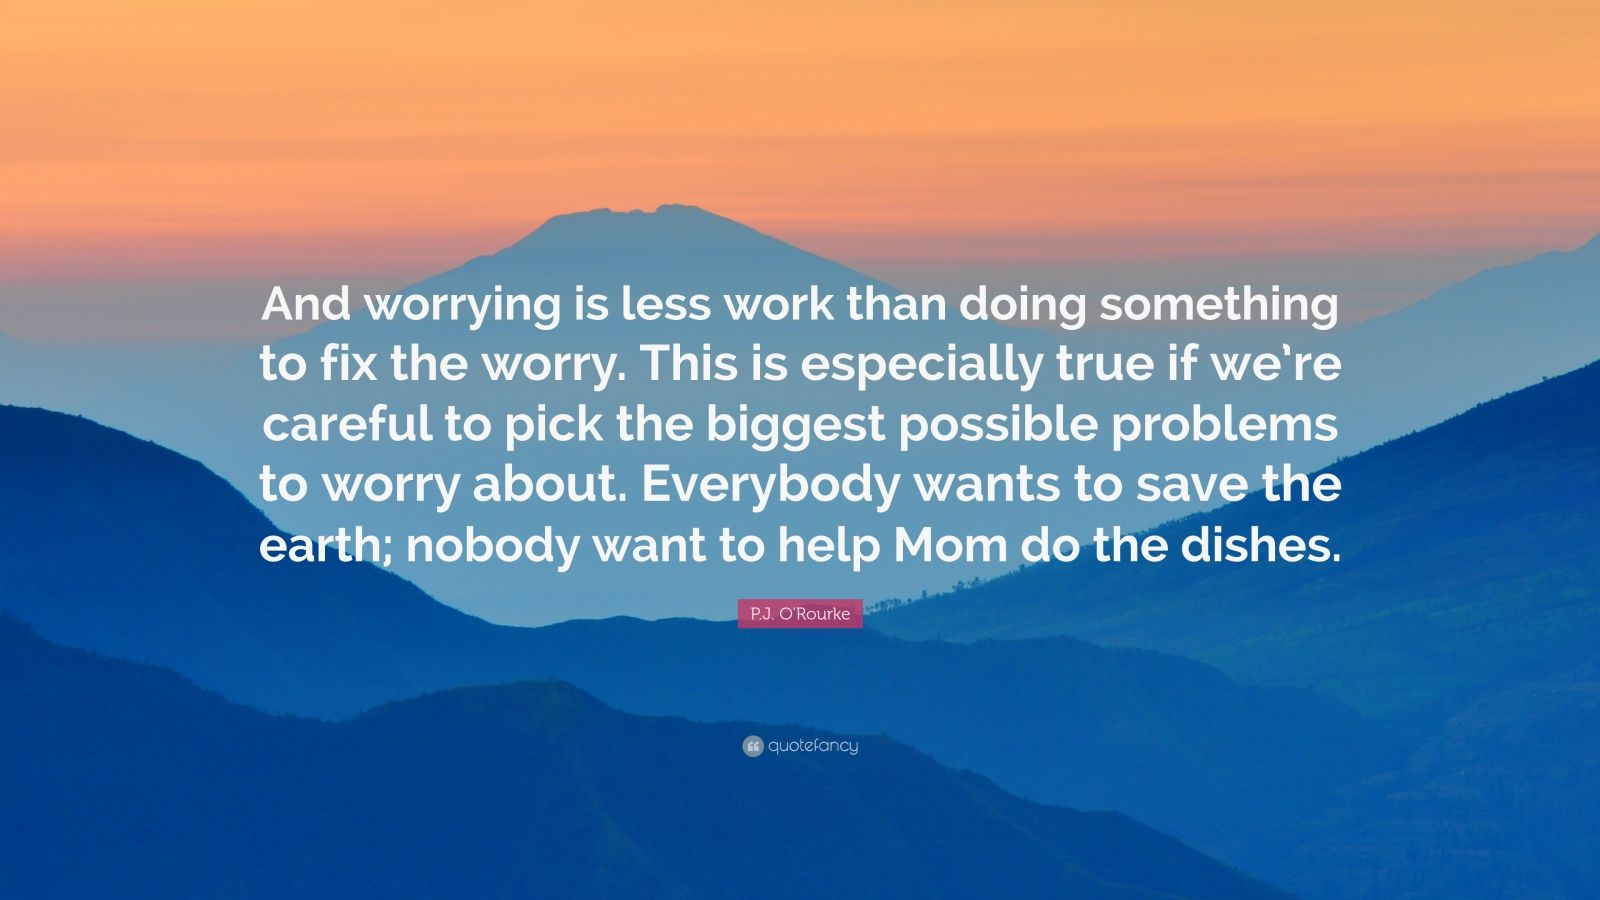 "P.J. O'Rourke Quote: ""And worrying is less work than doing something to fix the worry. This is especially true if we're careful to pick the biggest possible problems to worry about. Everybody wants to save the earth; nobody want to help Mom do the dishes."""